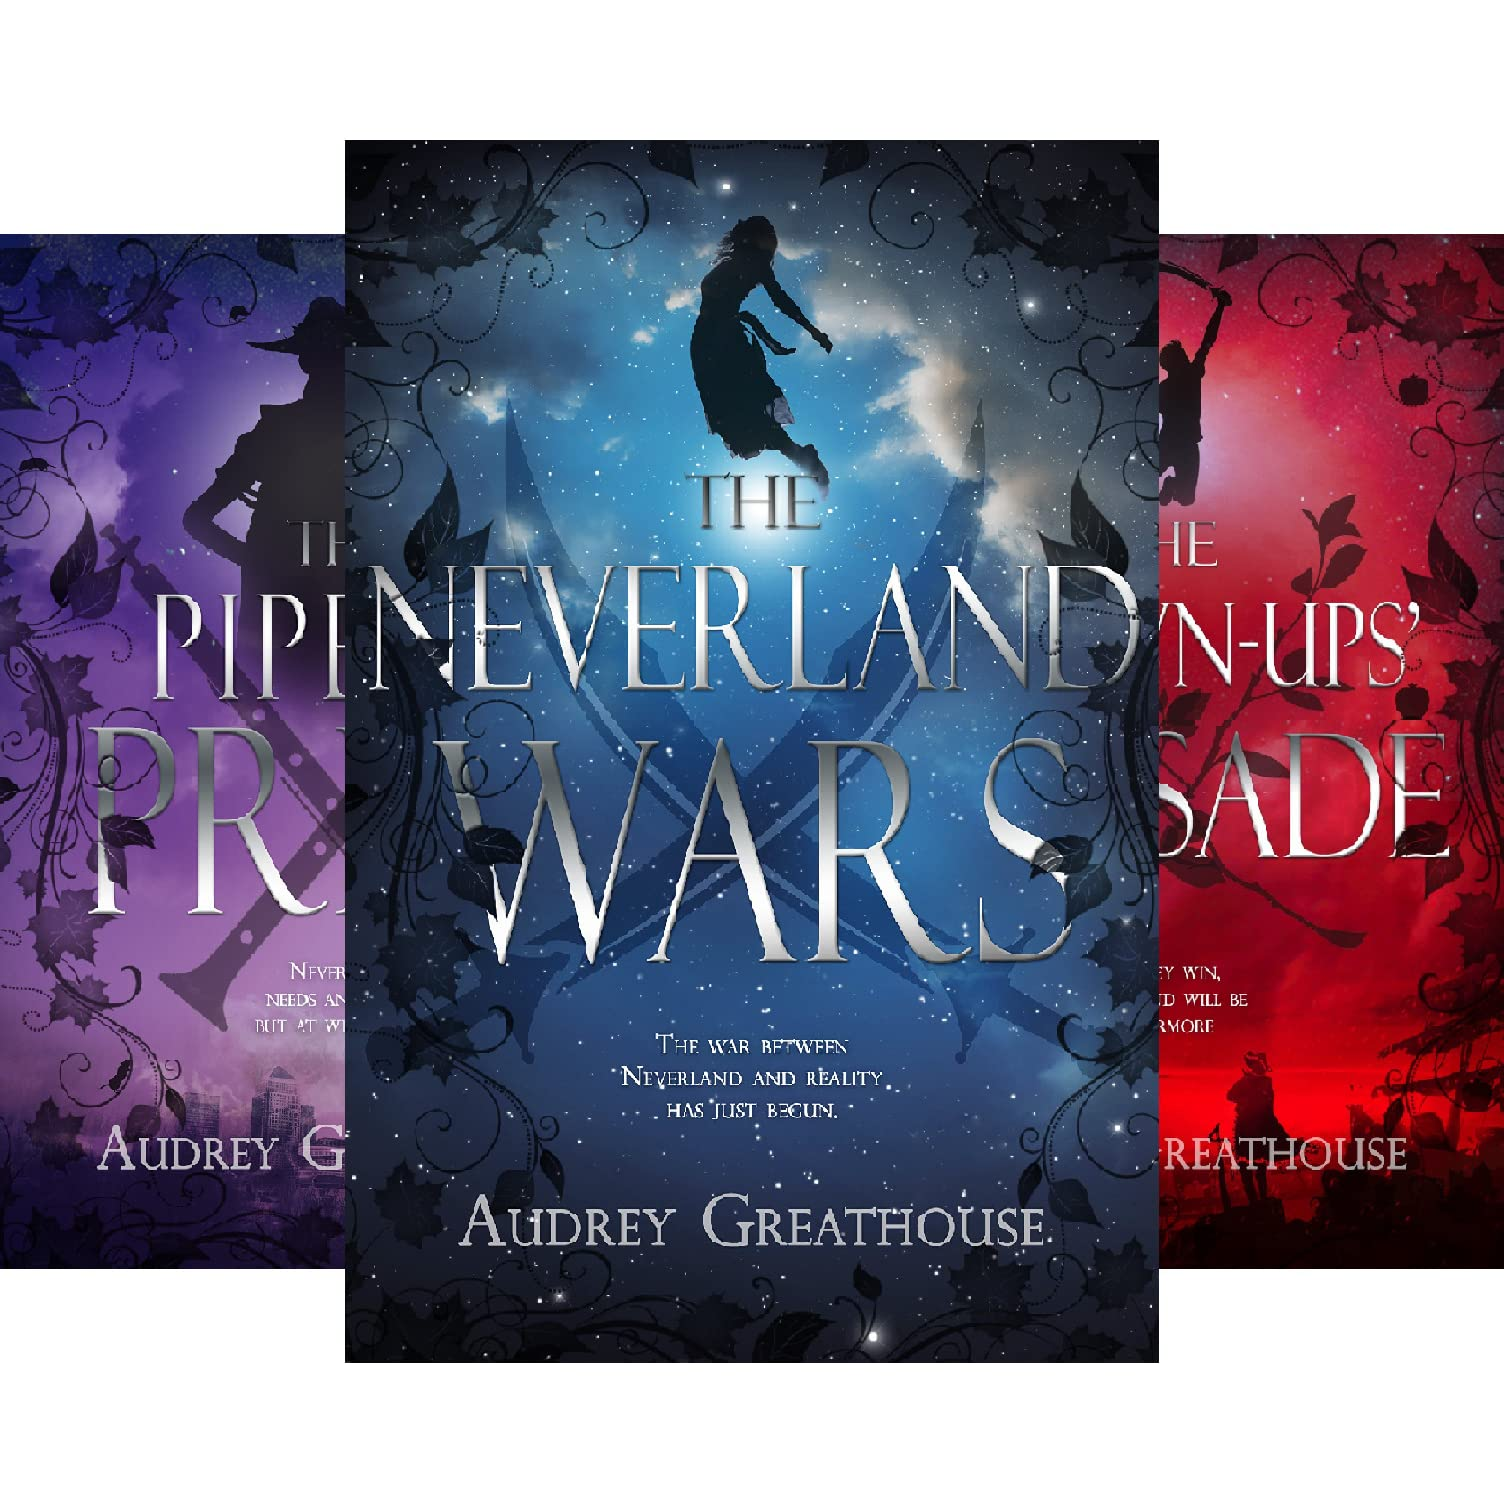 Groovy The Neverland Wars 3 Book Series By Audrey Greathouse Interior Design Ideas Grebswwsoteloinfo